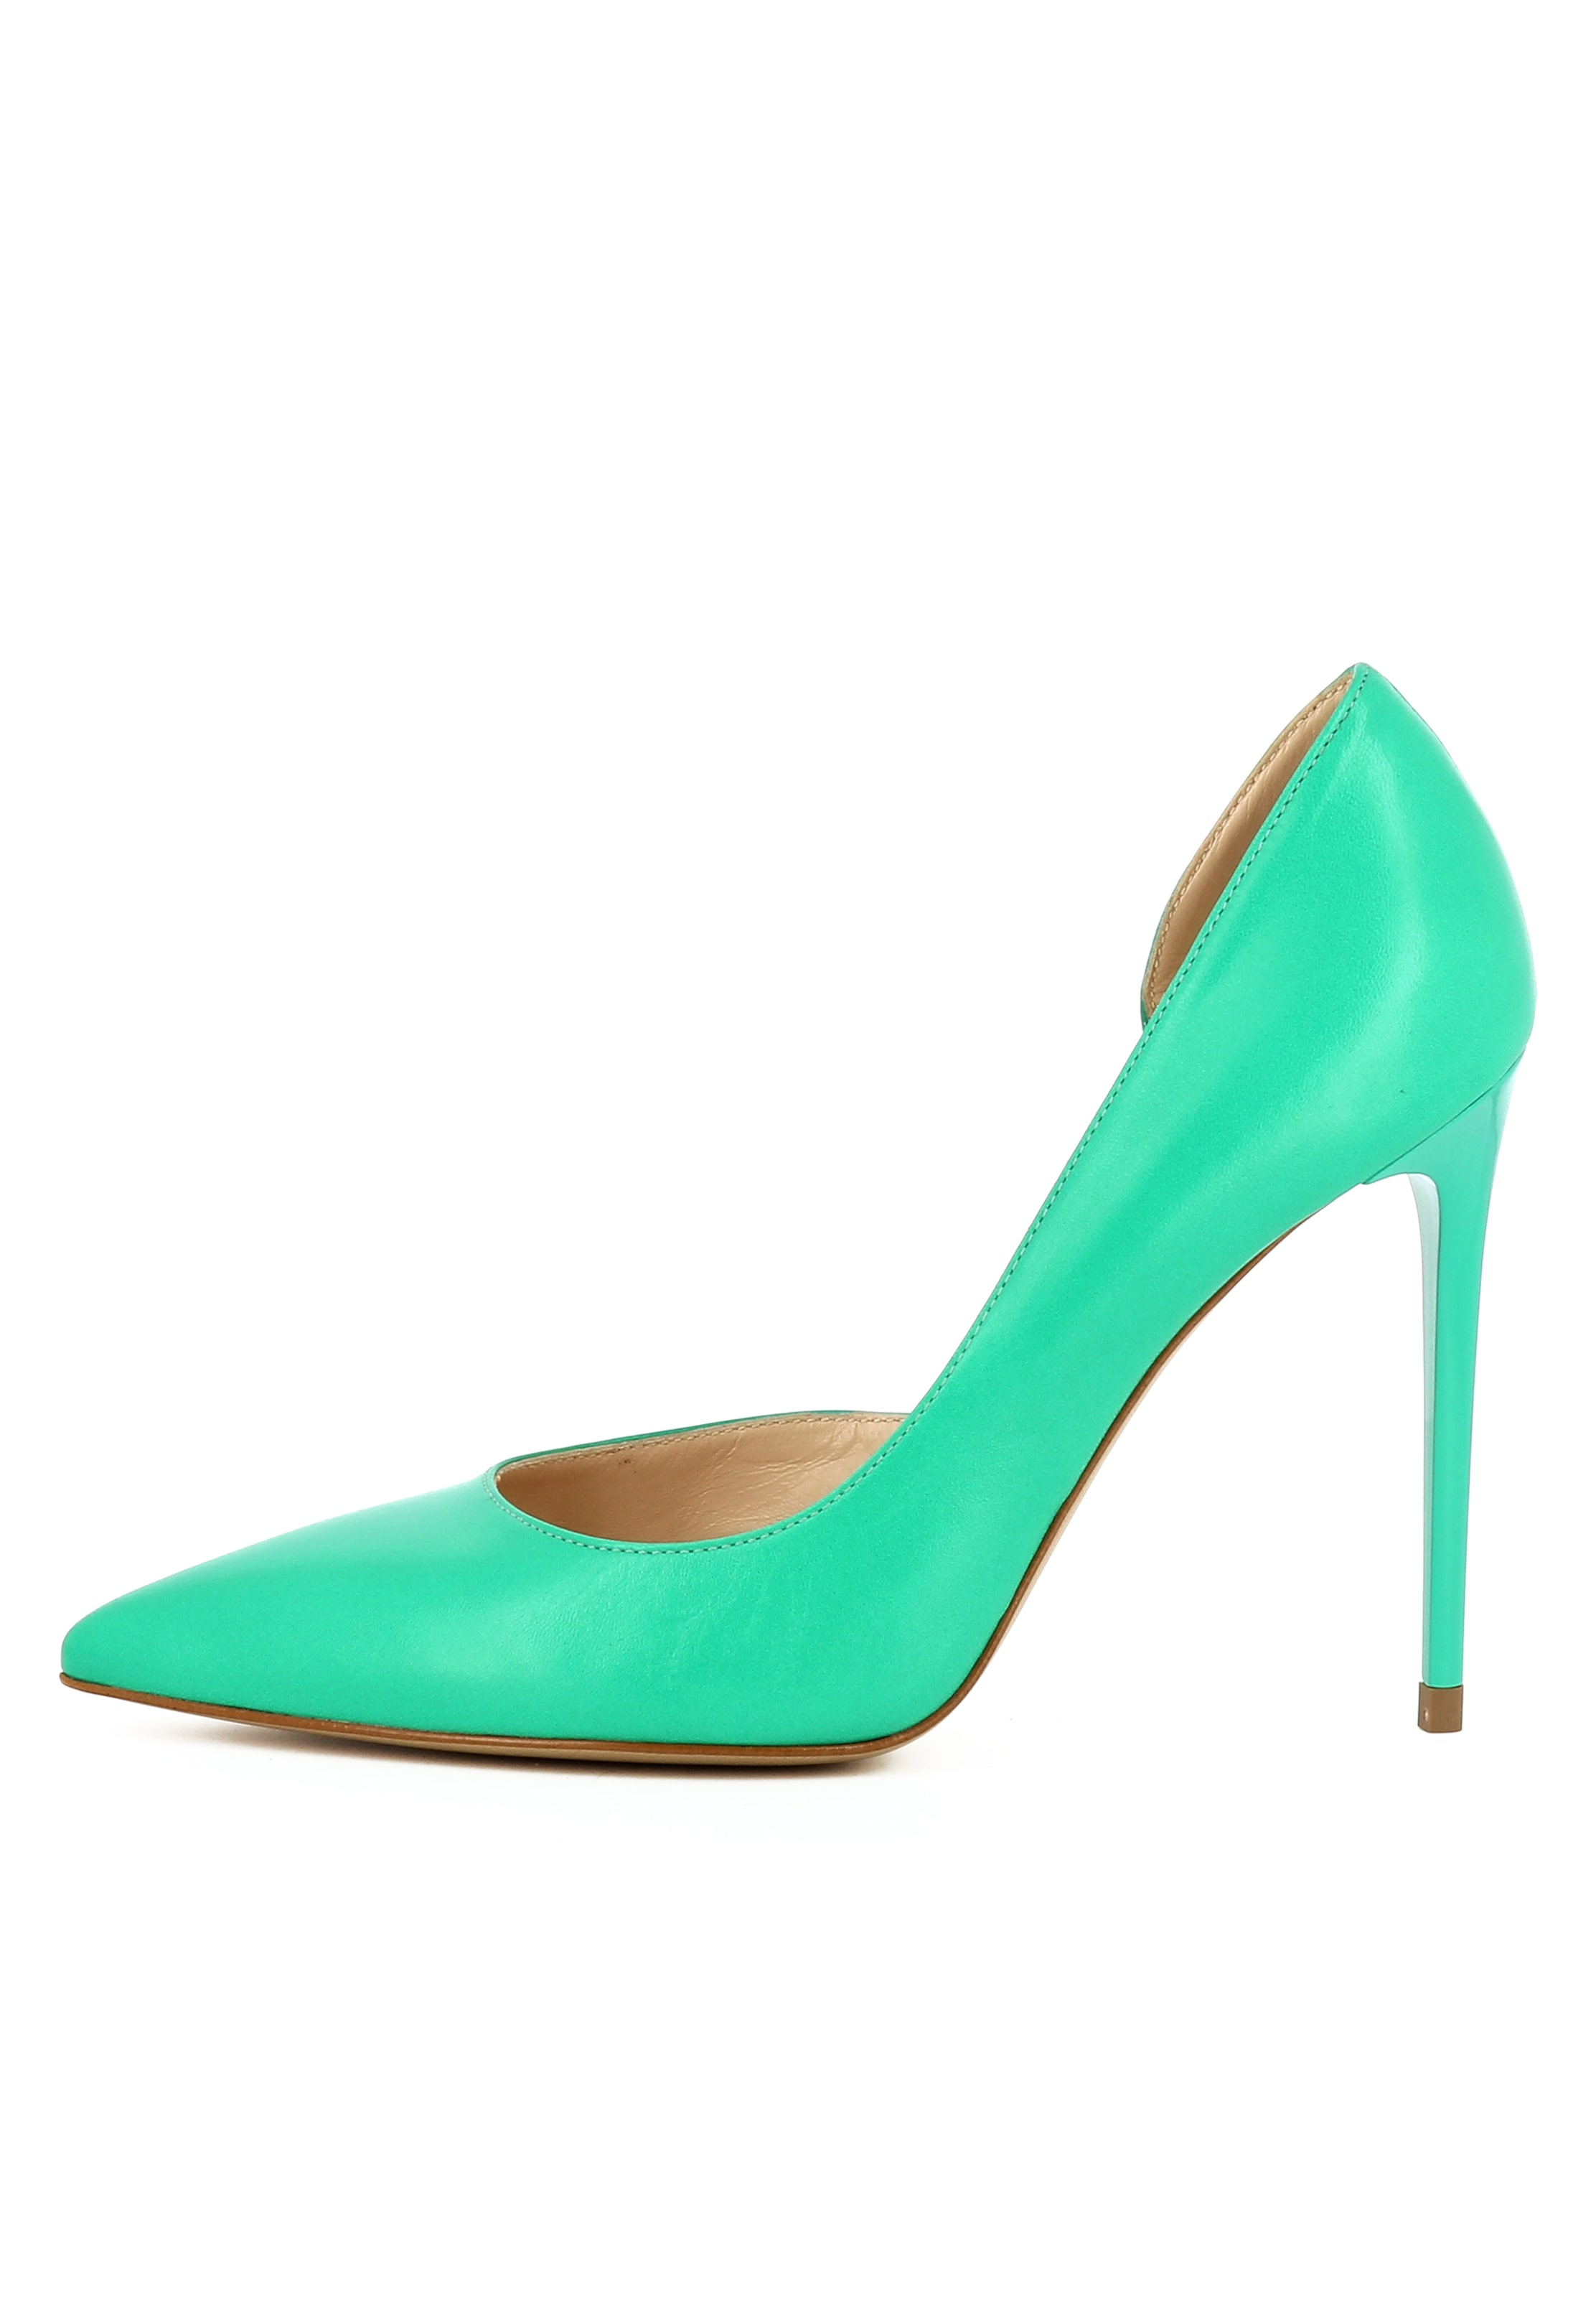 Mint Evita Evita Pumps In 'alina' eD29WIbEYH